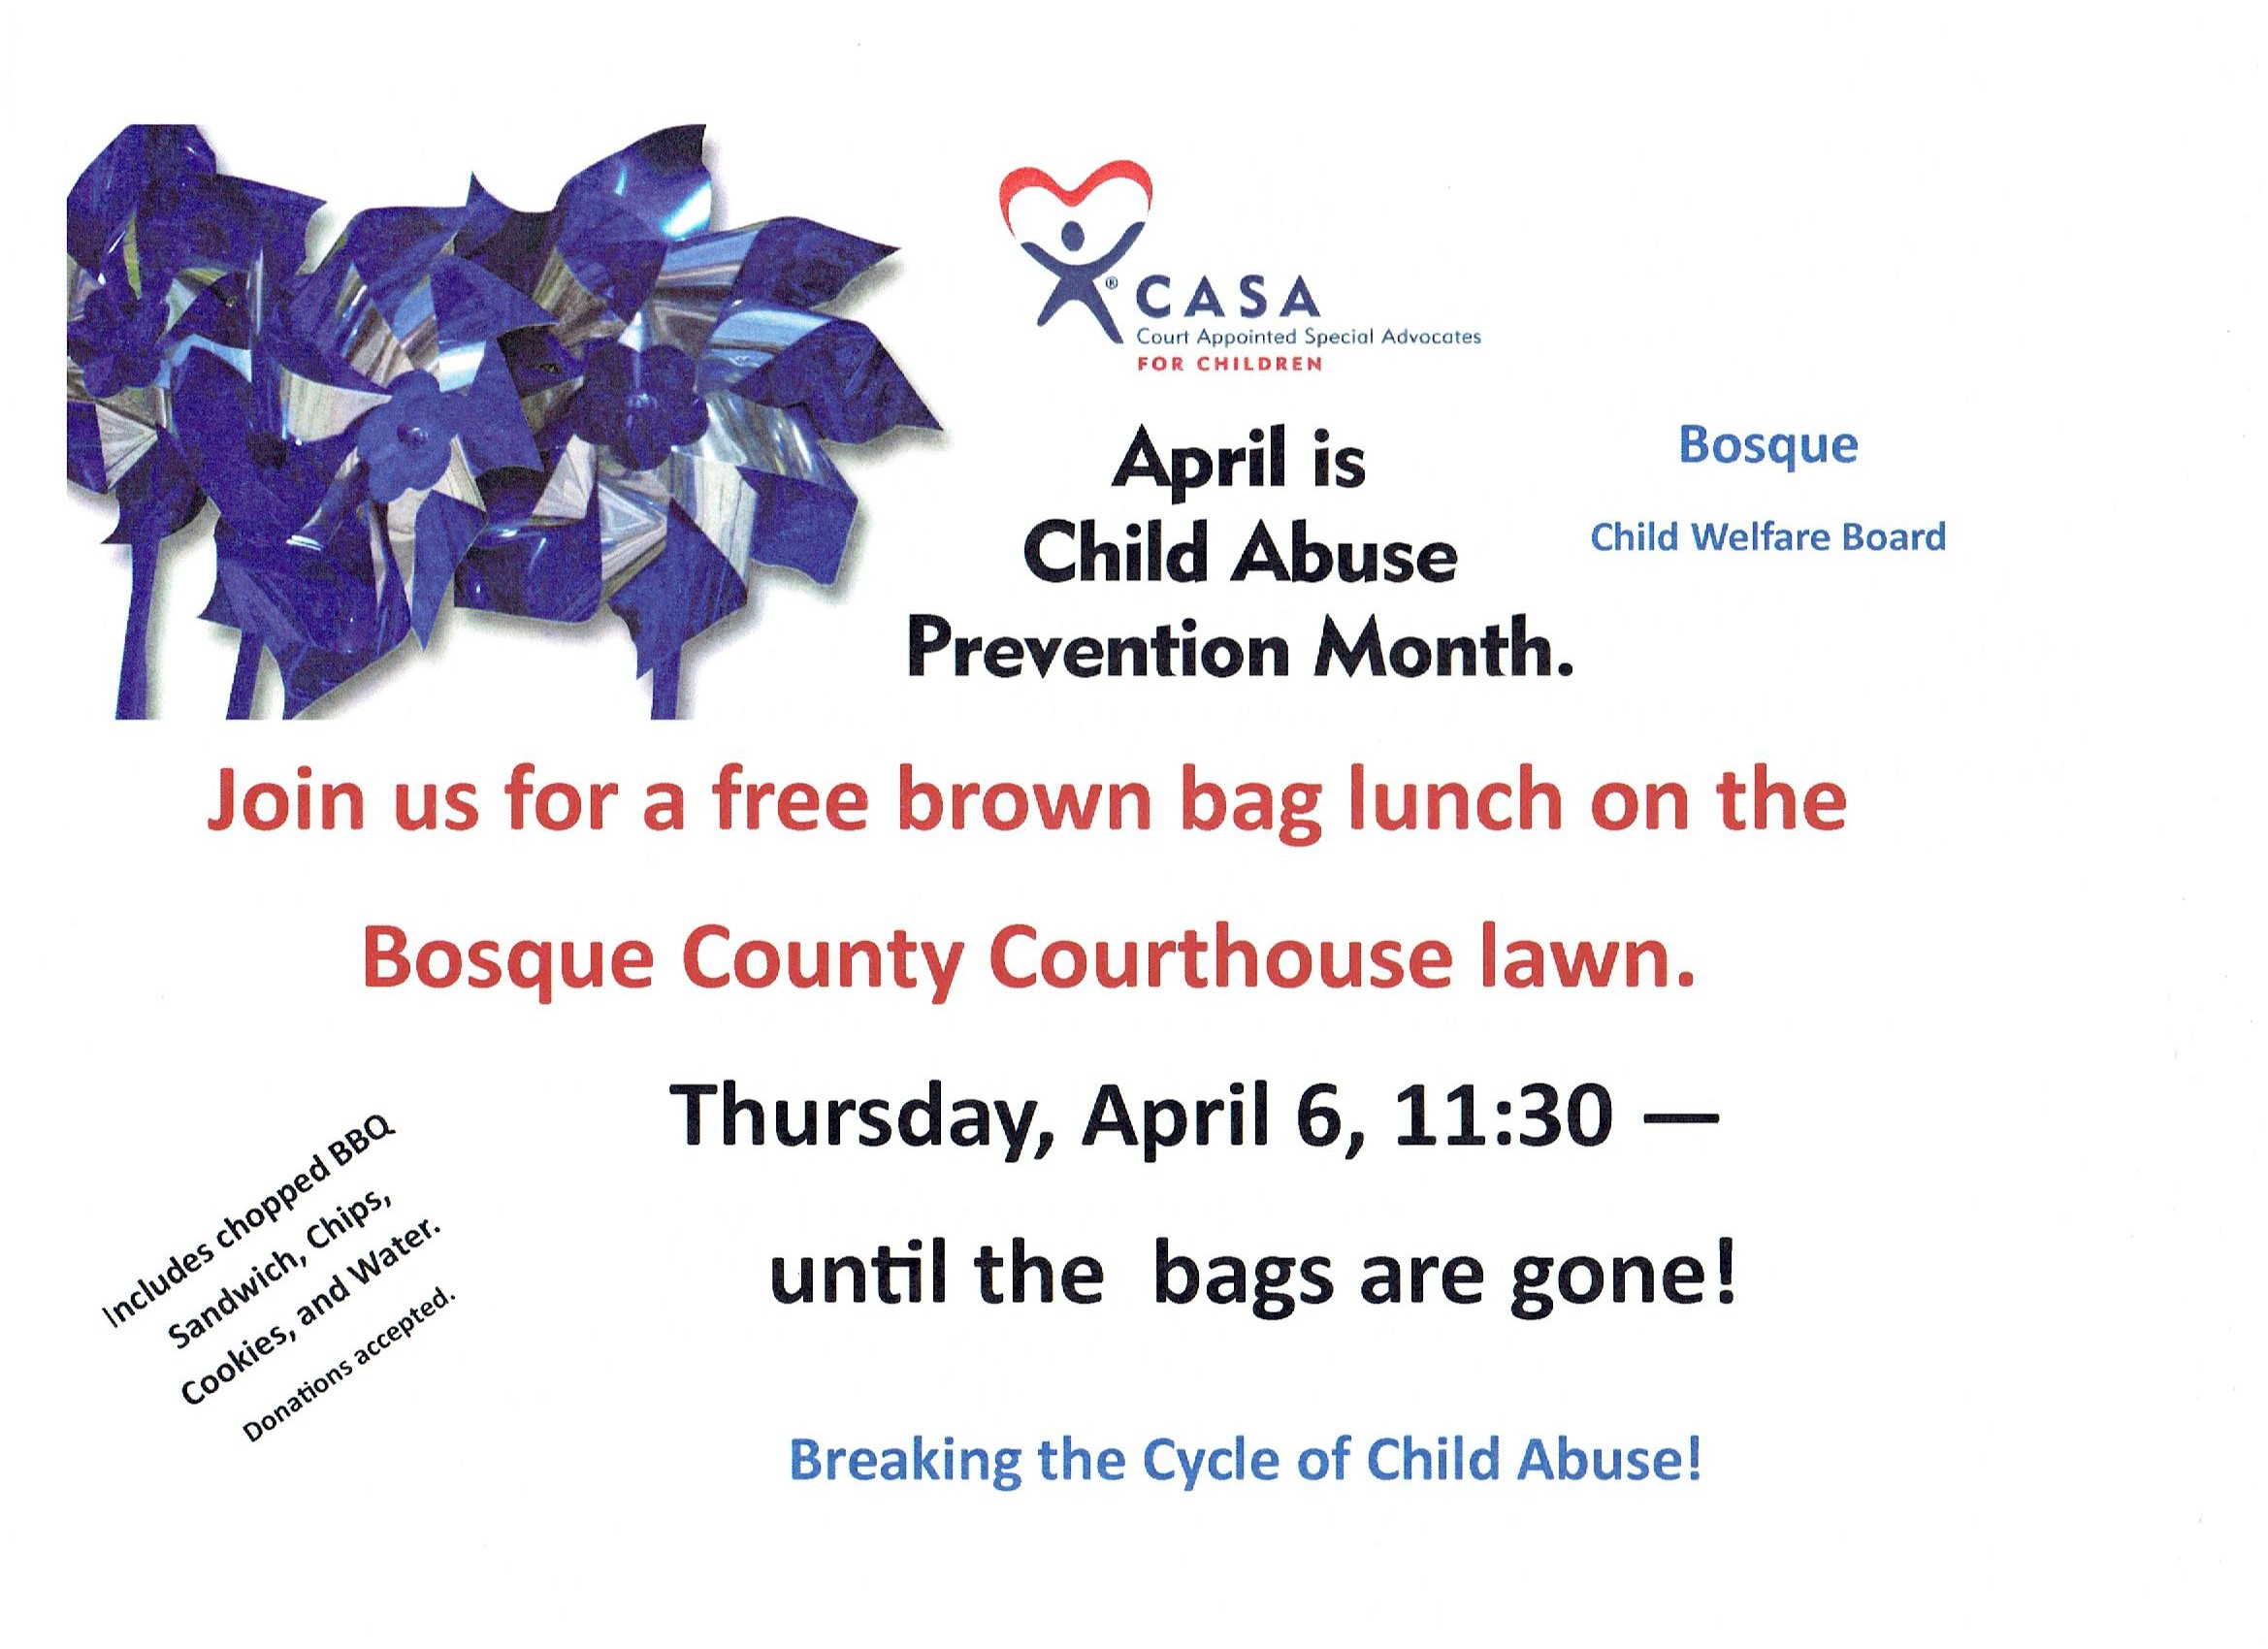 CASA Brown Bag Lunch @ Bosque County Courthouse Lawn